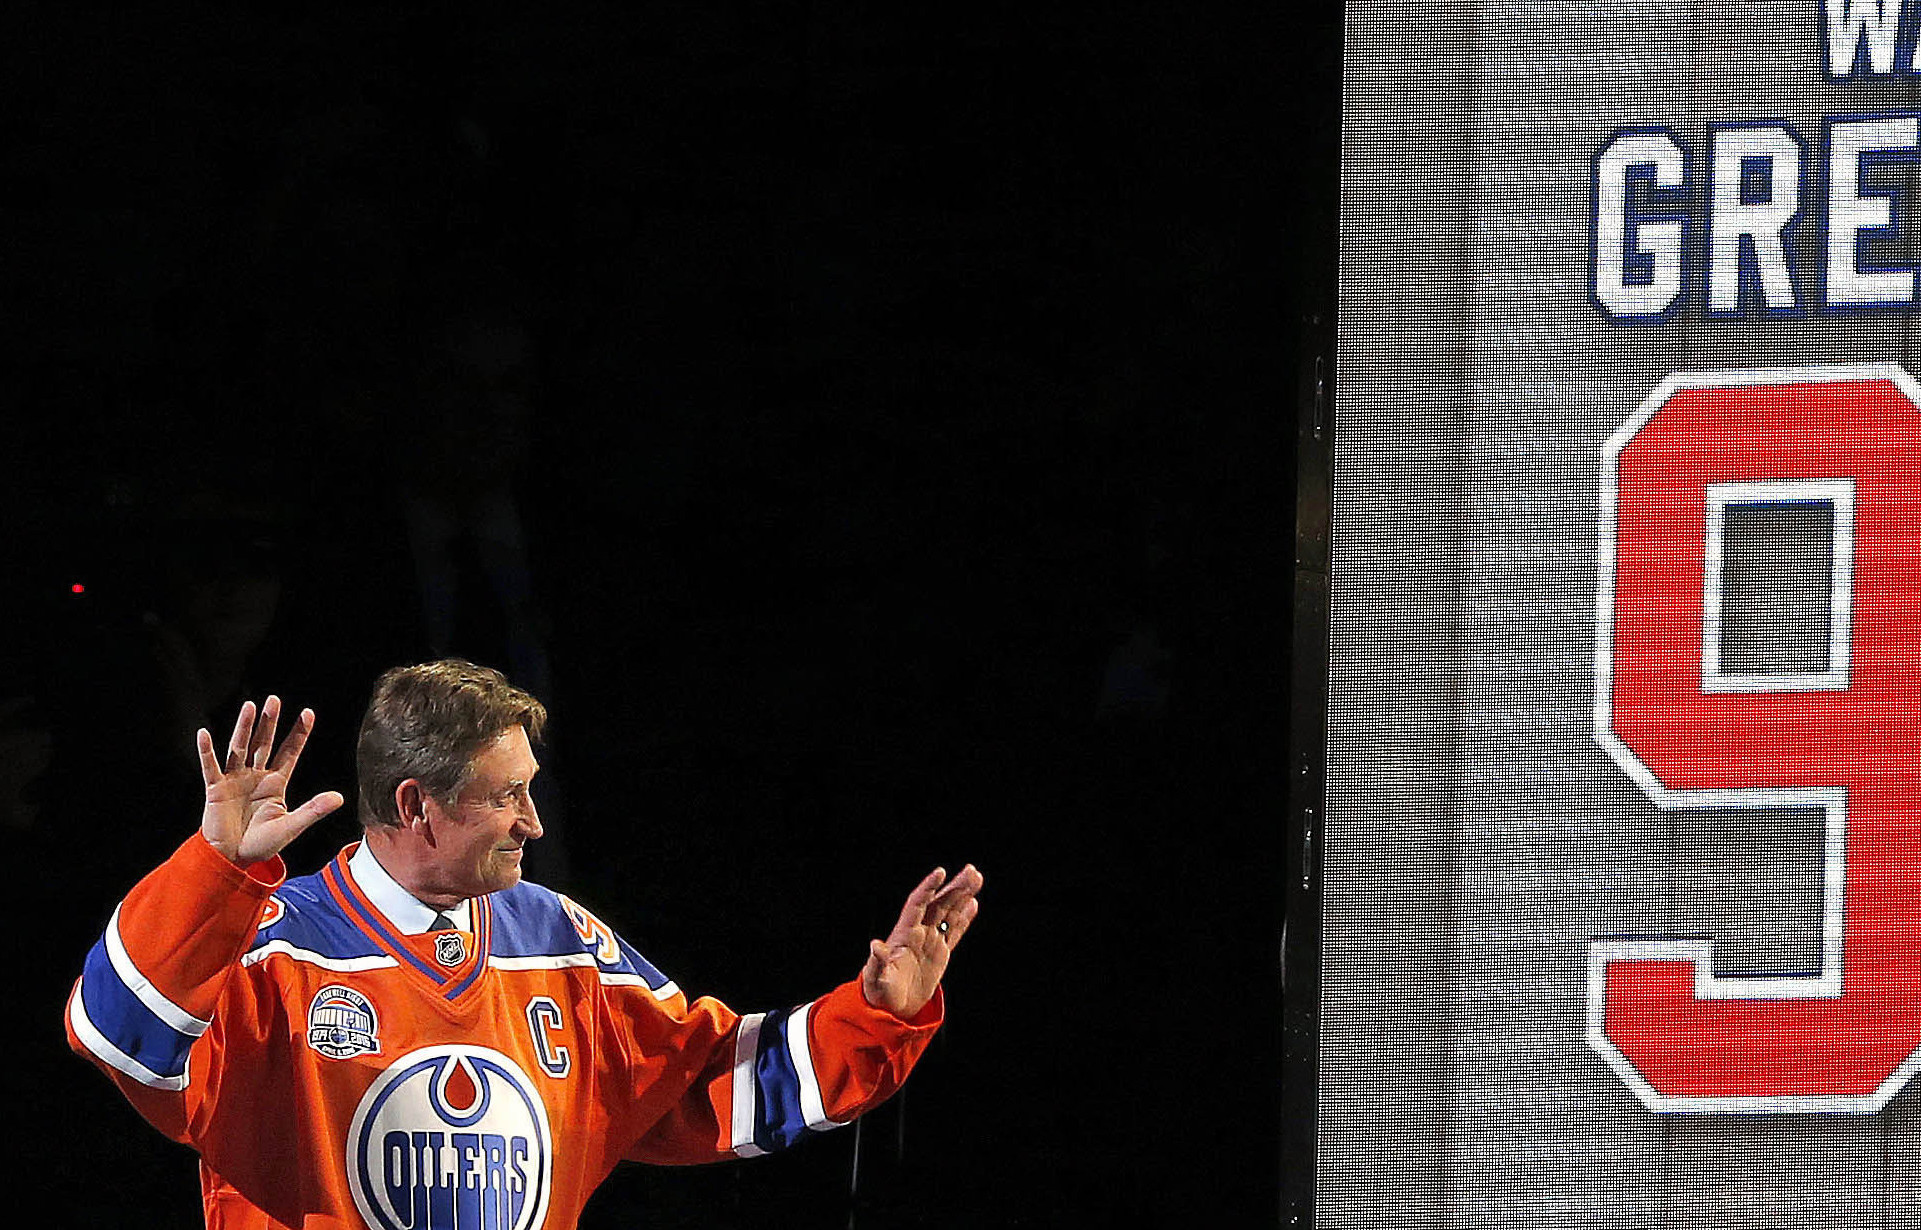 Wayne Gretzky, Oilers greats saluted at Rexall Place farewell